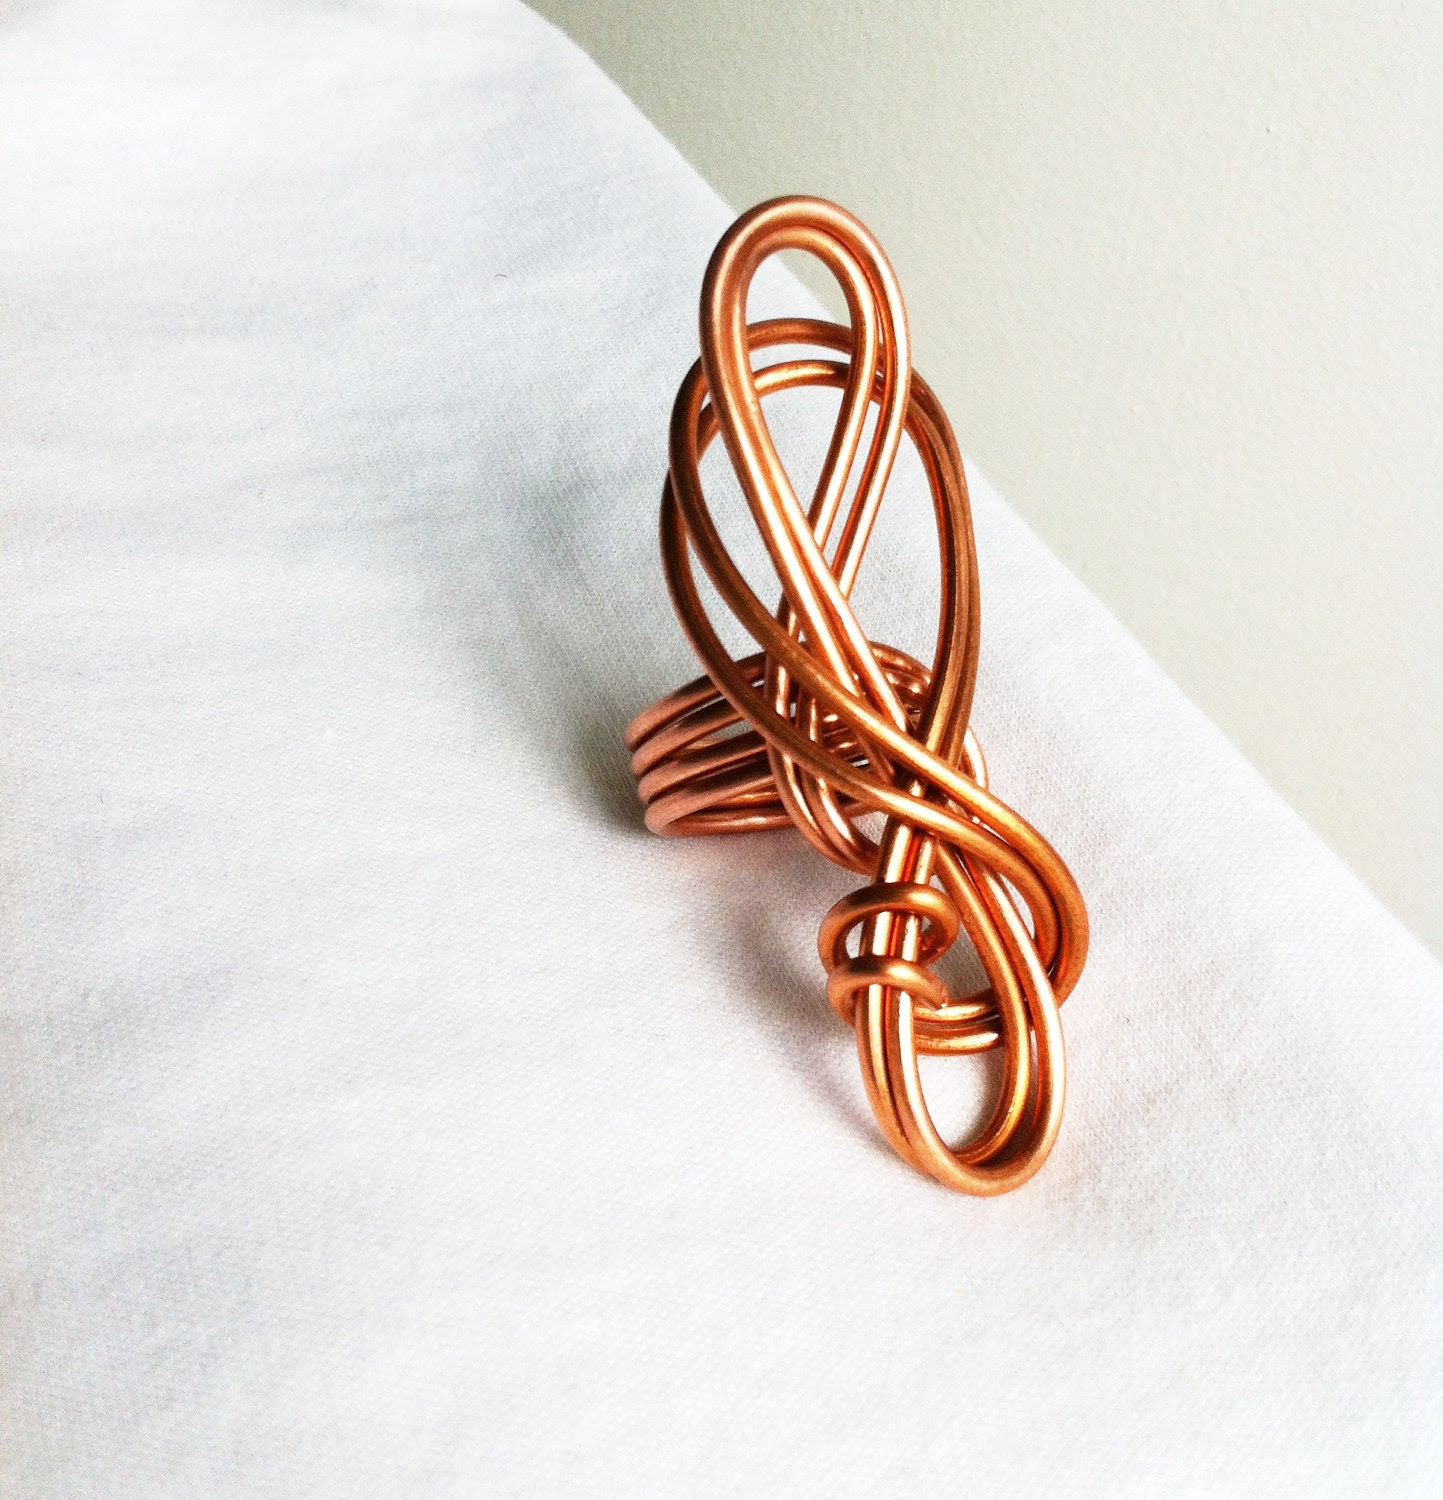 FORGET ME KNOT - Hand-formed Copper Ring